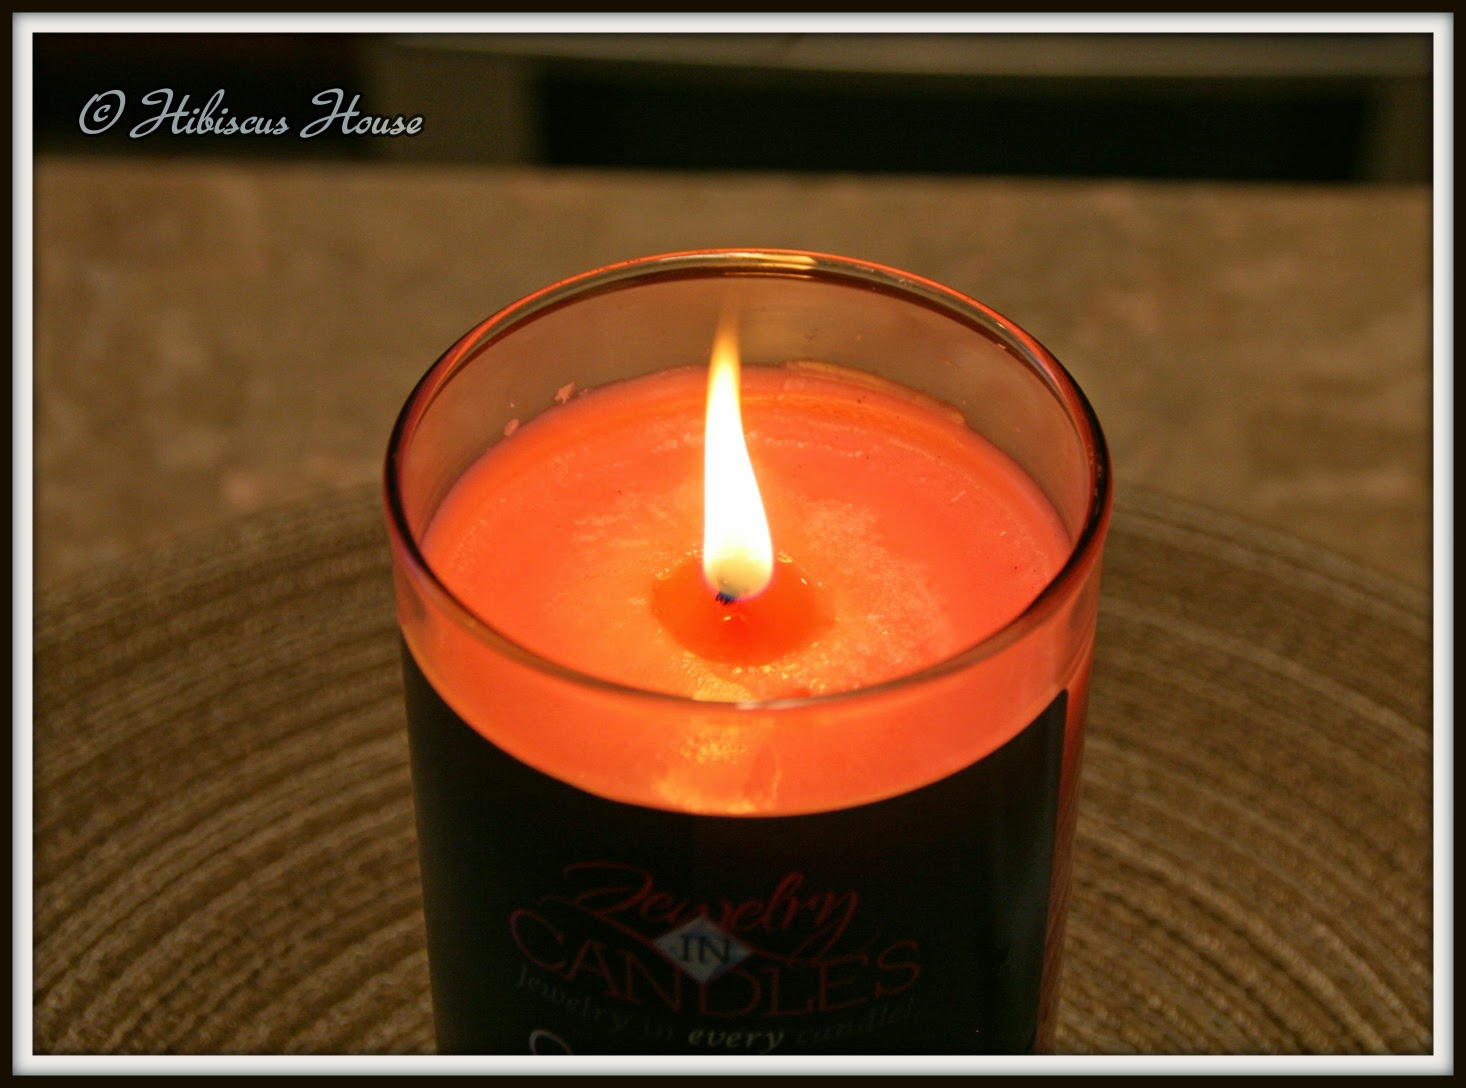 hibiscus house jewelry in candles product review